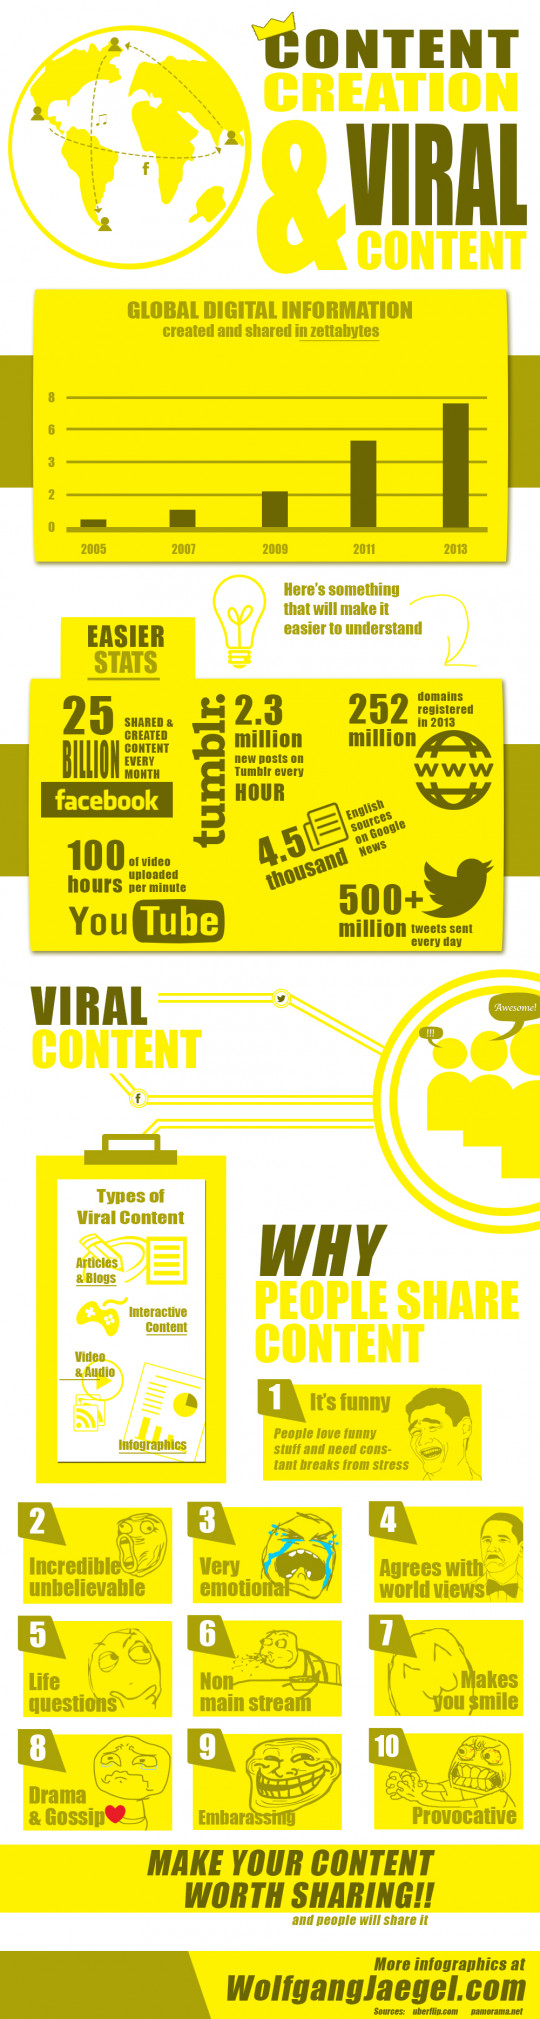 Content Creation & Viral Content